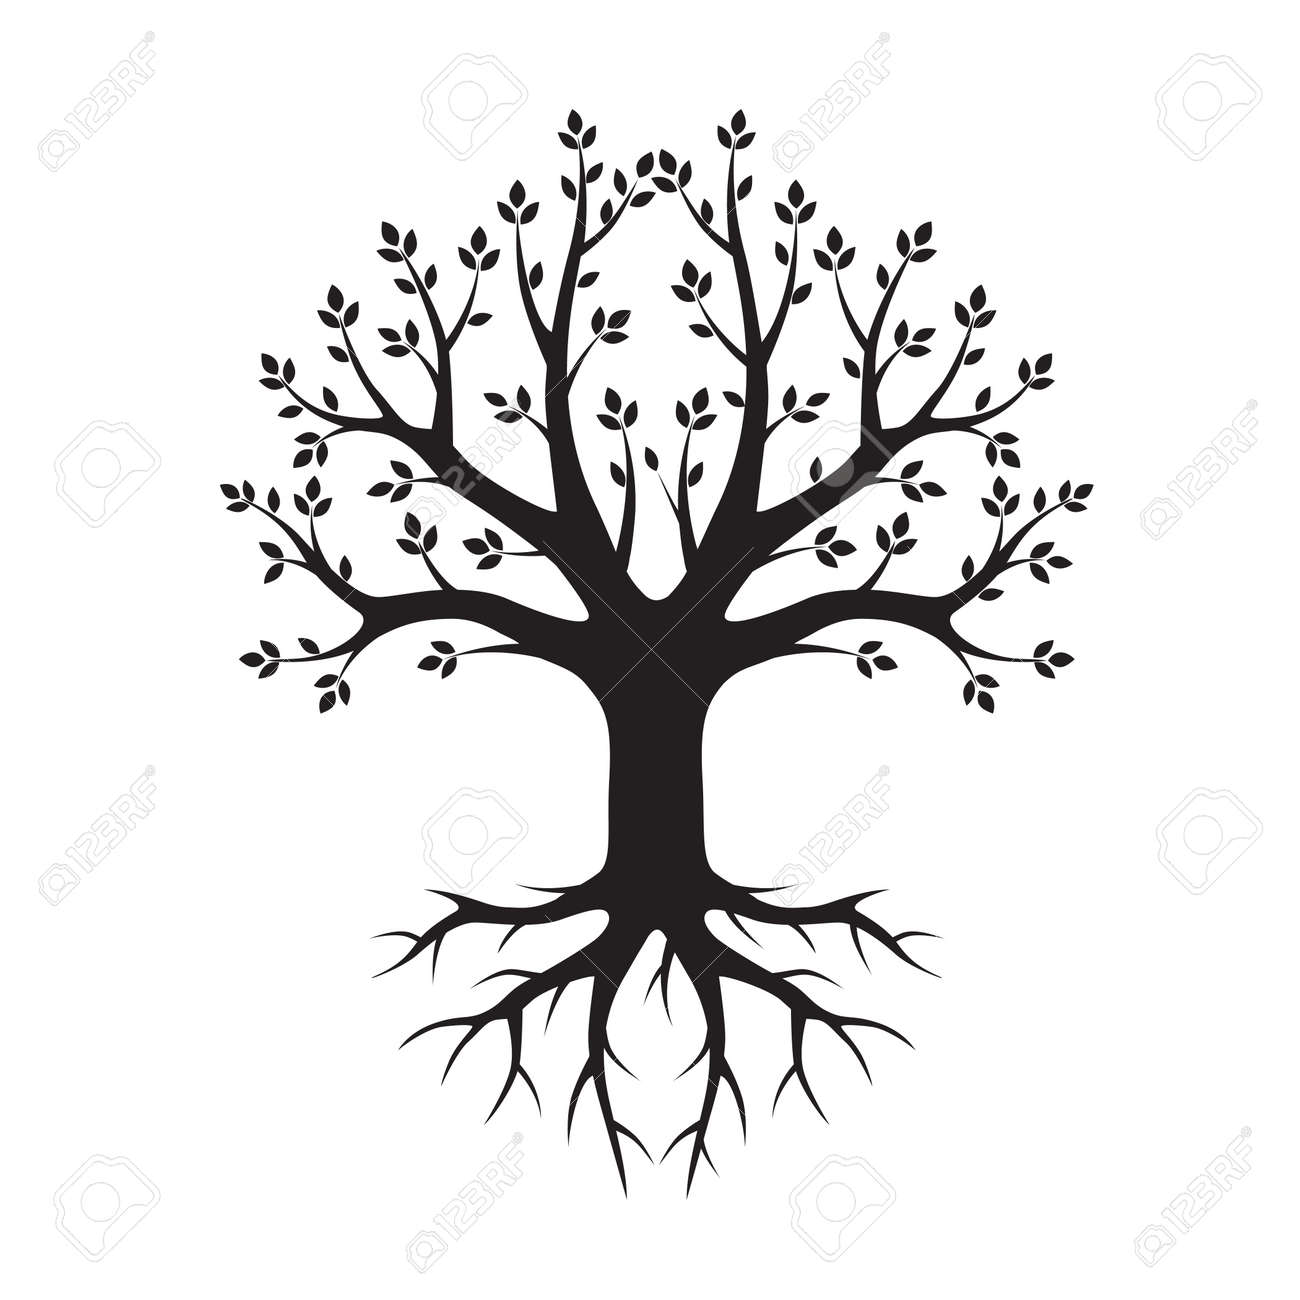 black tree and roots vector illustration royalty free cliparts rh 123rf com tree with roots silhouette vector free tree with roots vector logo